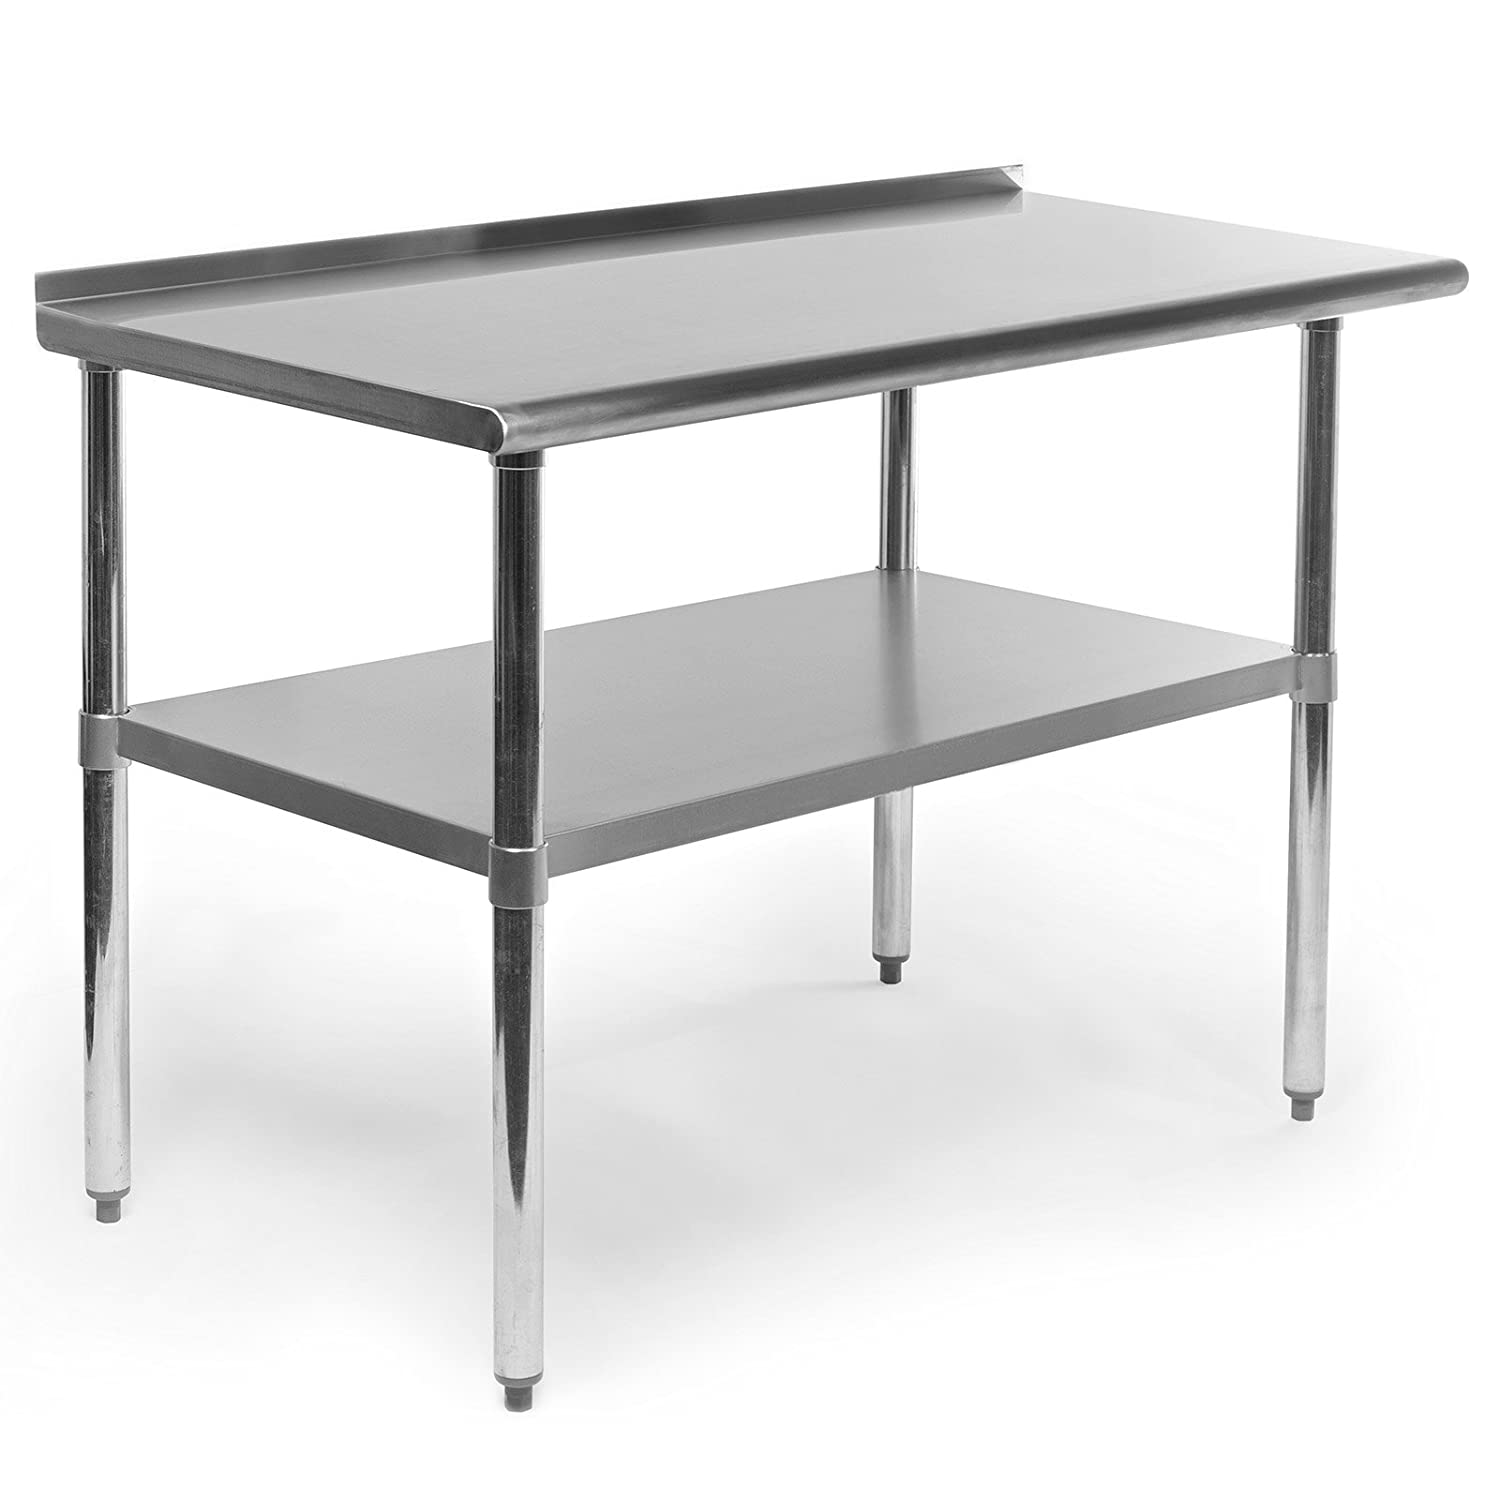 Kitchen work table - Gridmann Stainless Steel Commercial Kitchen Prep Work Table With Backsplash 48 X 24 Inches